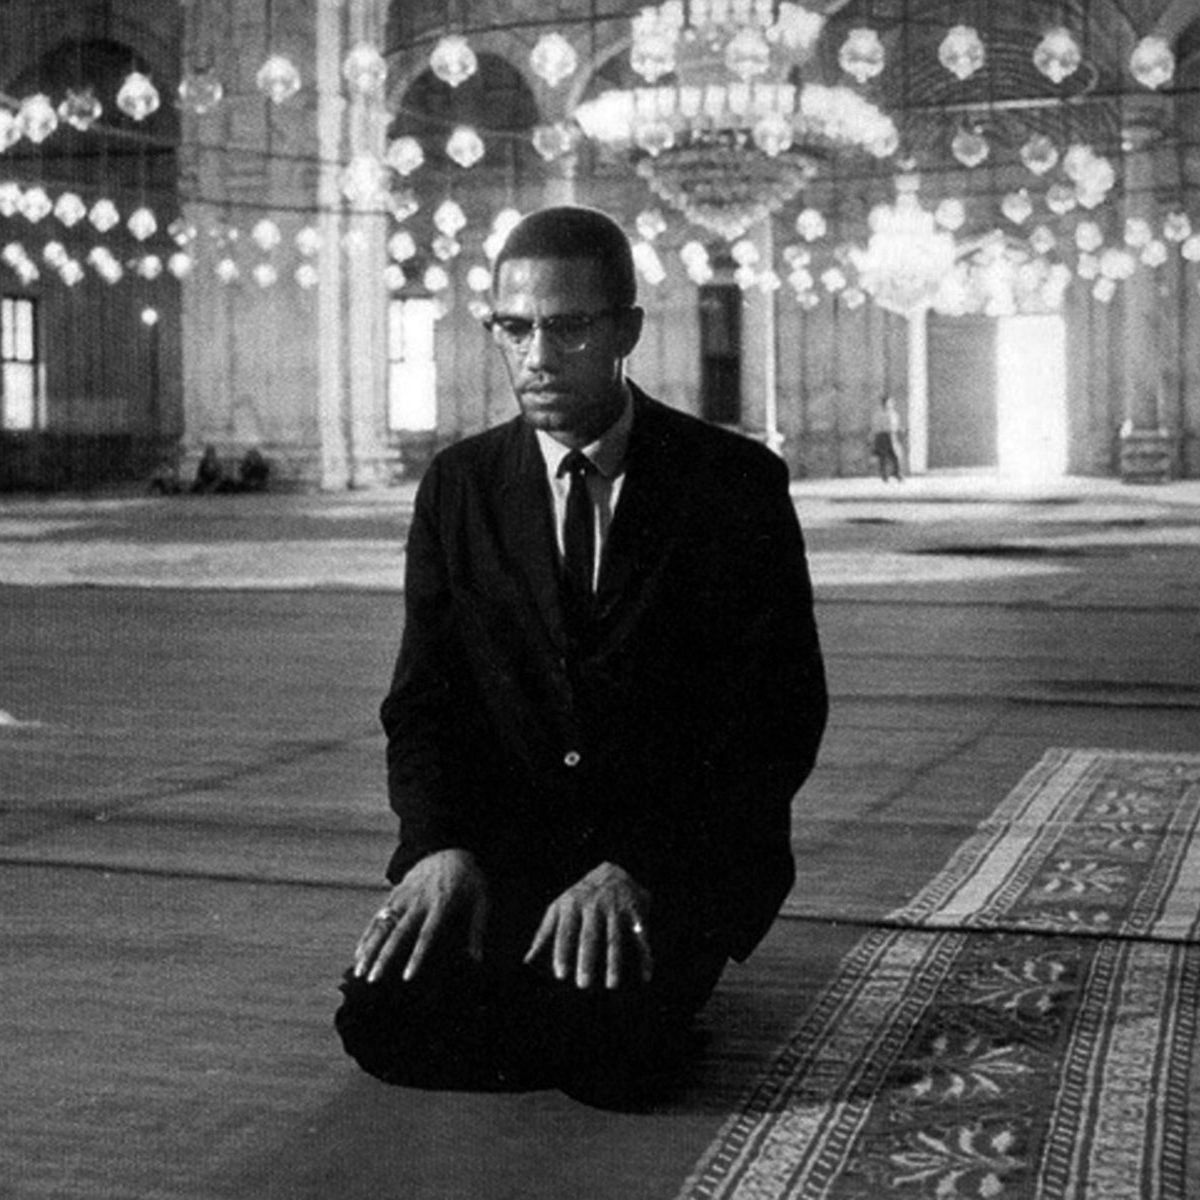 Malcolm X kneels in a black suit during his 1964 pilgrimage to Mecca